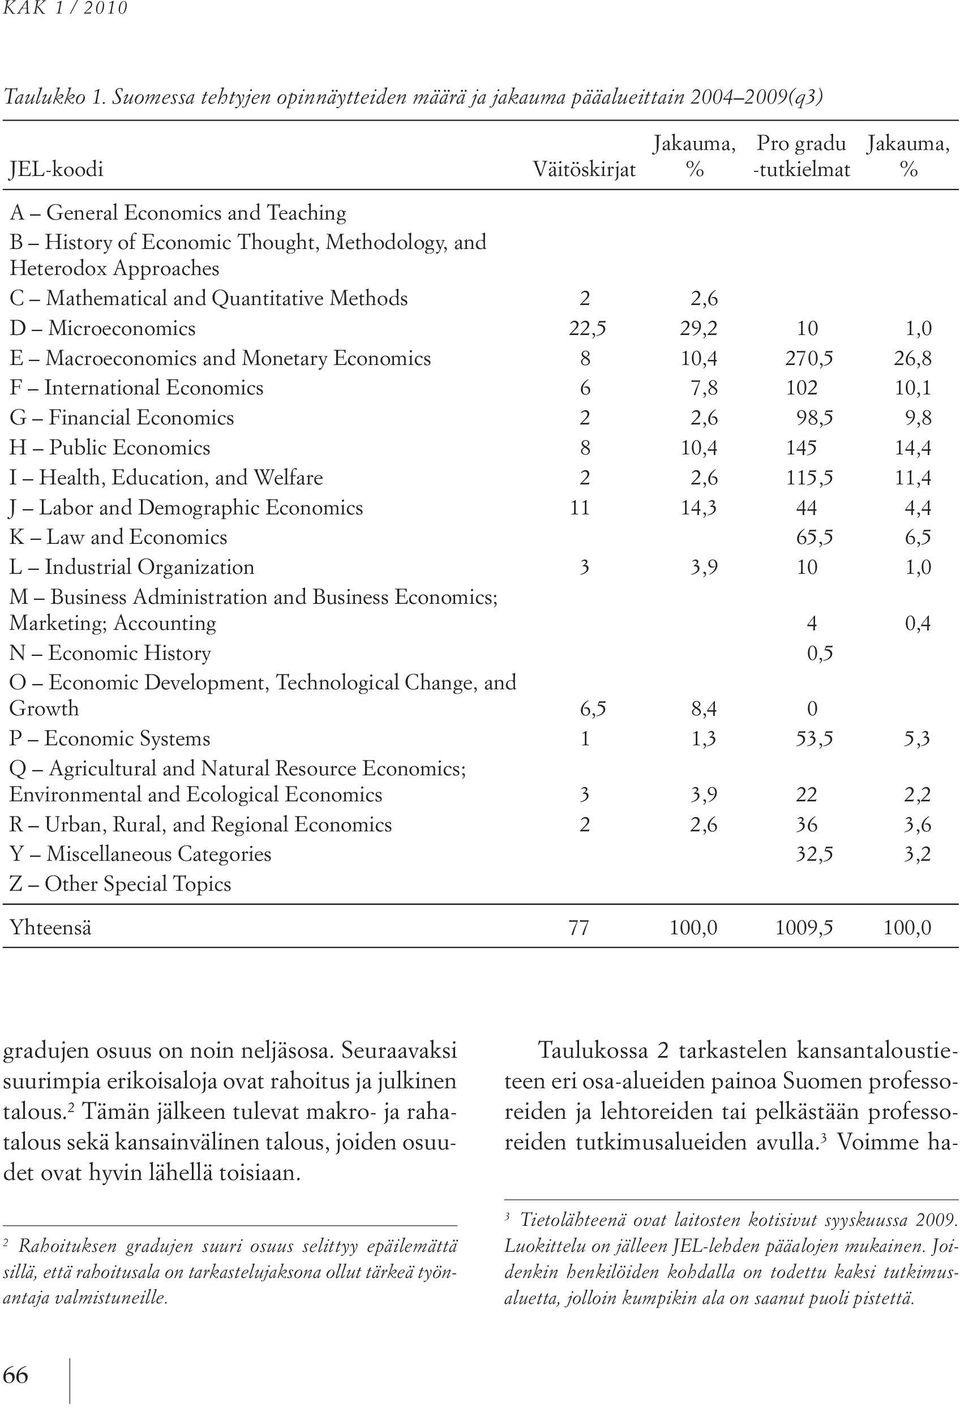 Thought, Methodology, and Heterodox Approaches C Mathematical and Quantitative Methods 2 2,6 D Microeconomics 22,5 29,2 10 1,0 E Macroeconomics and Monetary Economics 8 10,4 270,5 26,8 F